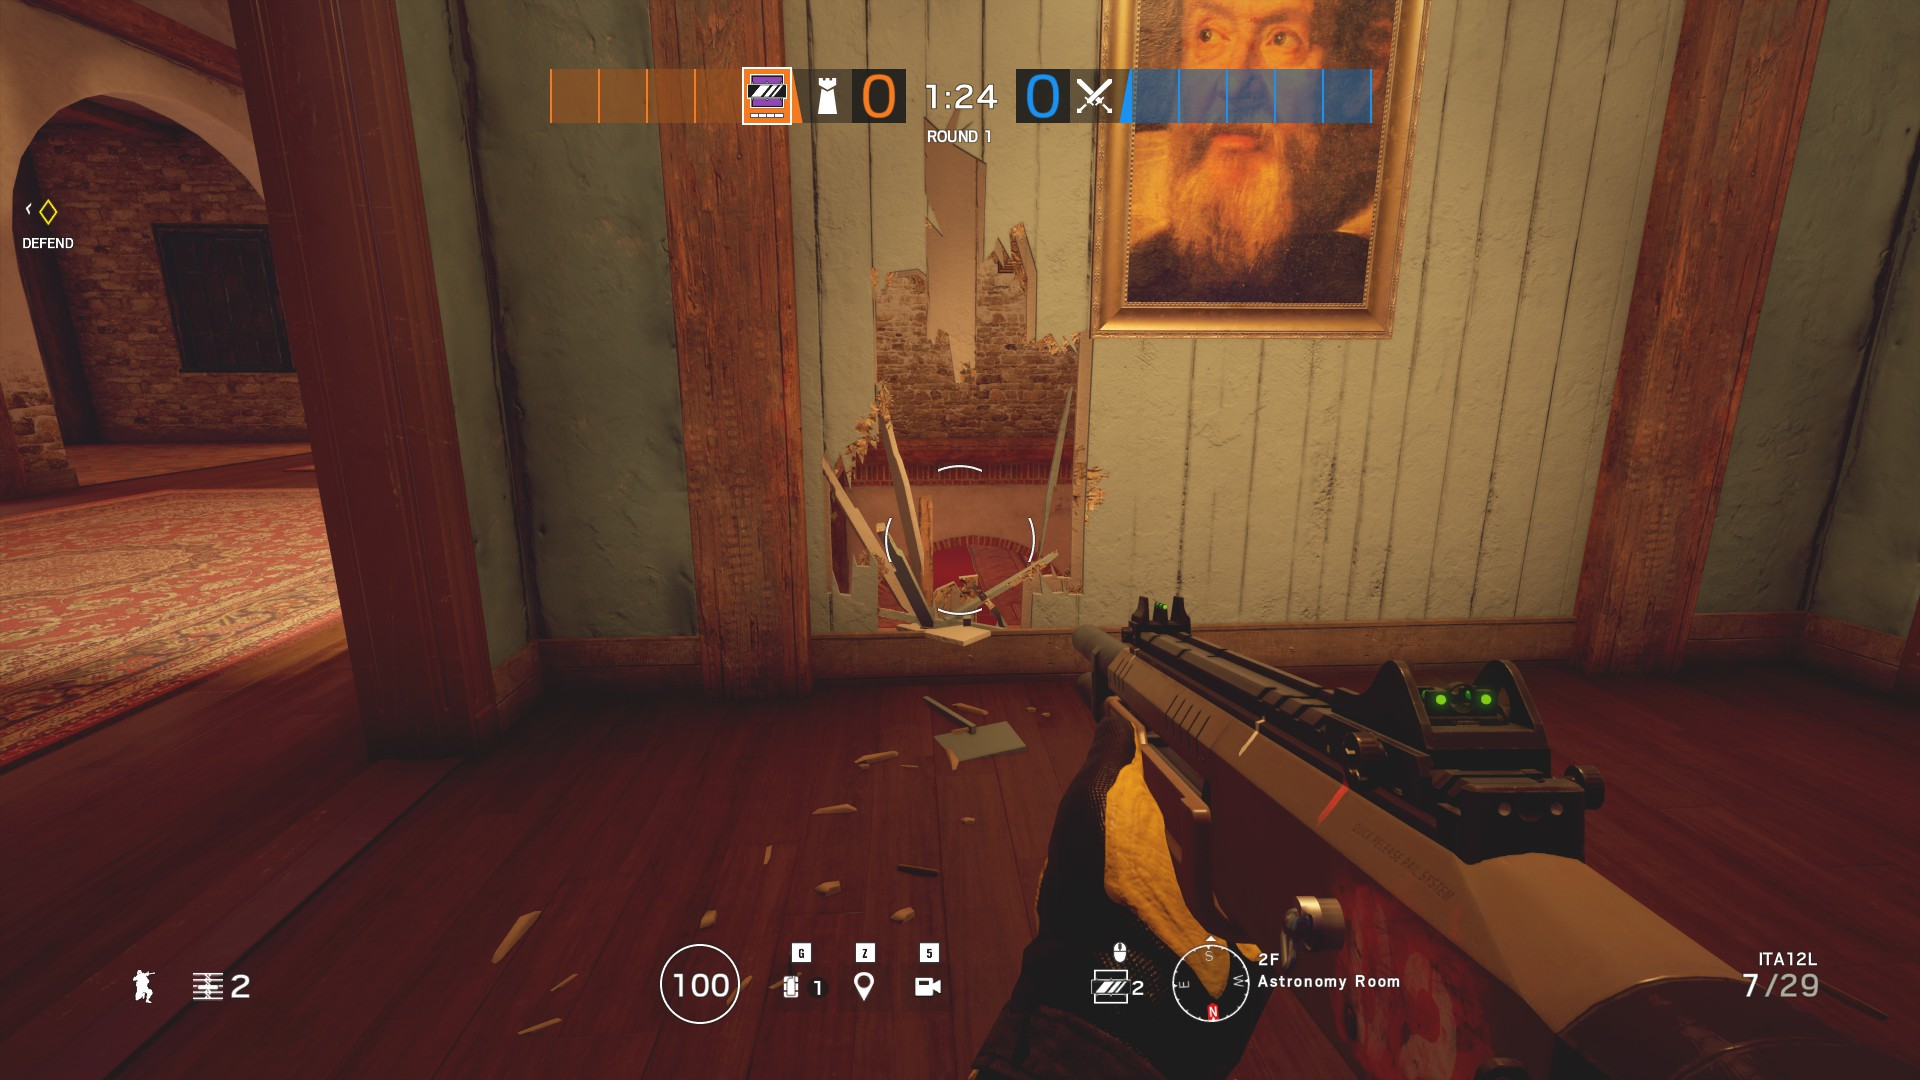 Player has shot a hole into the wall with a painting in the astronomy room